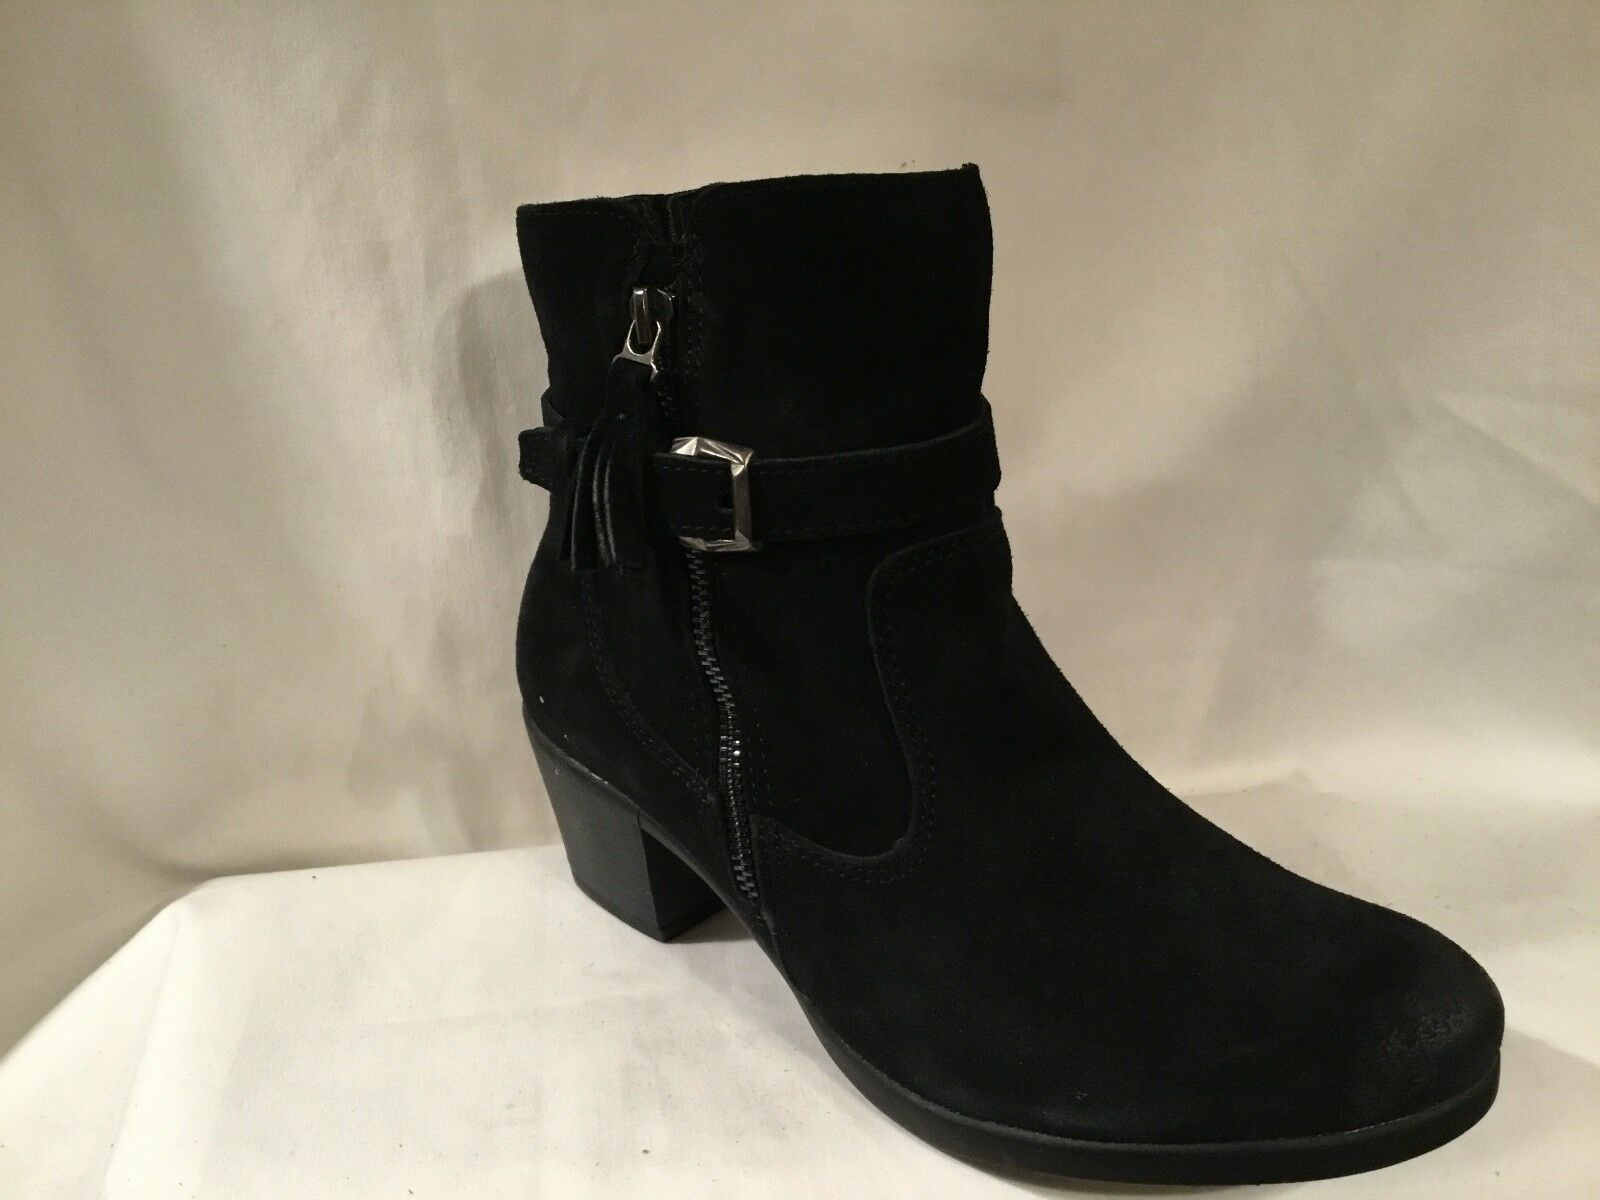 Earth Origins Suede Water Repellent Ankle Boots - Tori Black 7.5 wide